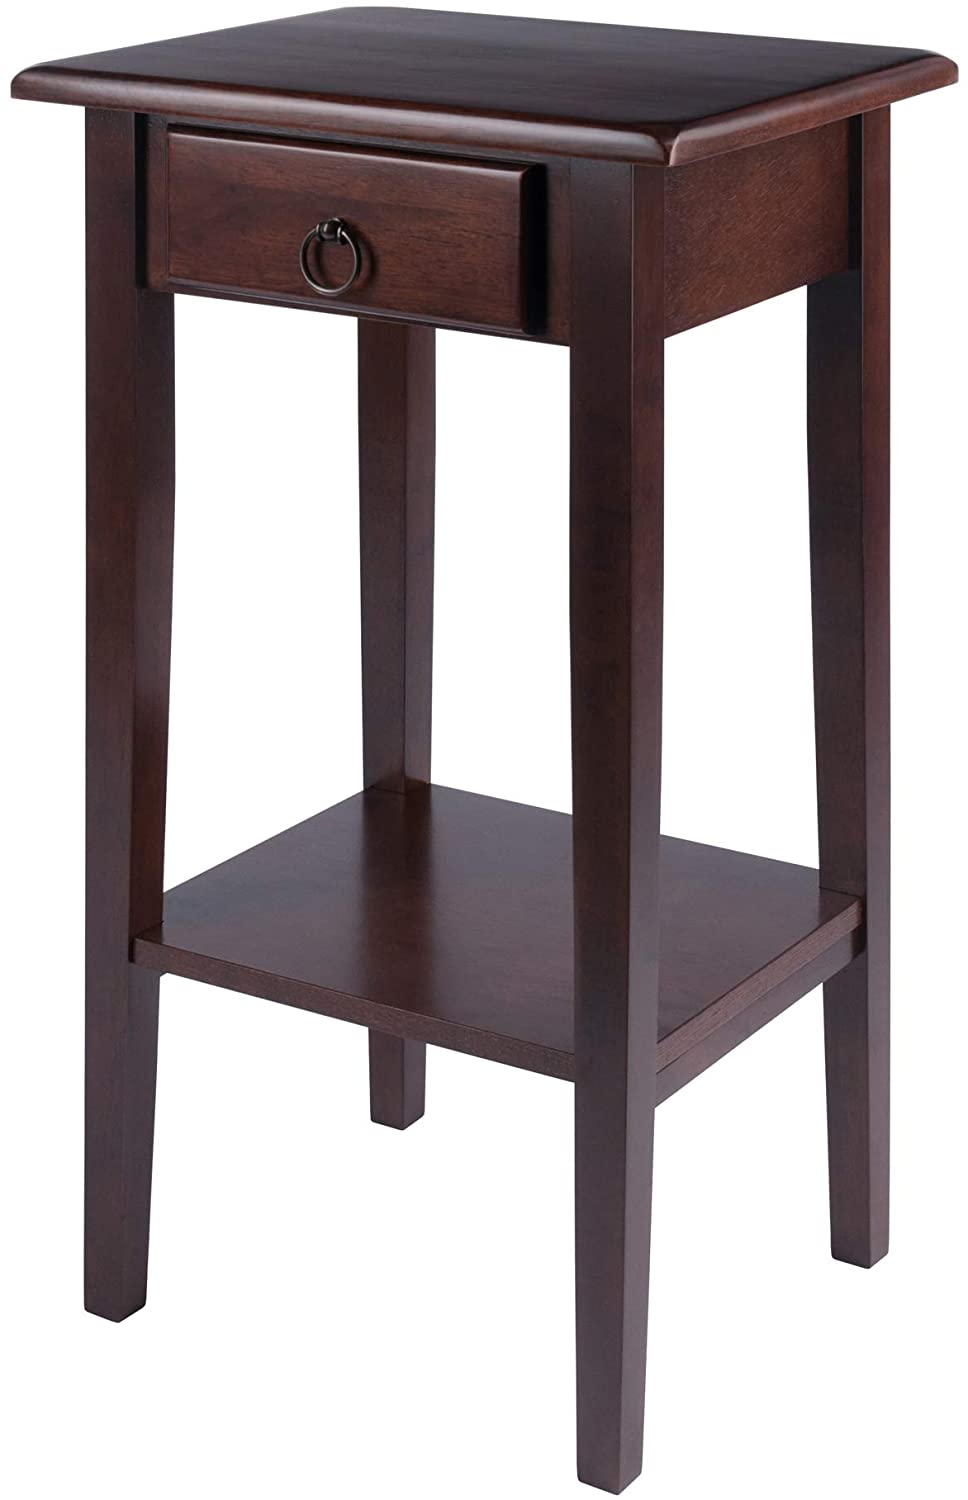 Regalia Accent Table With Drawer, Shelf - Pot Racks Plus